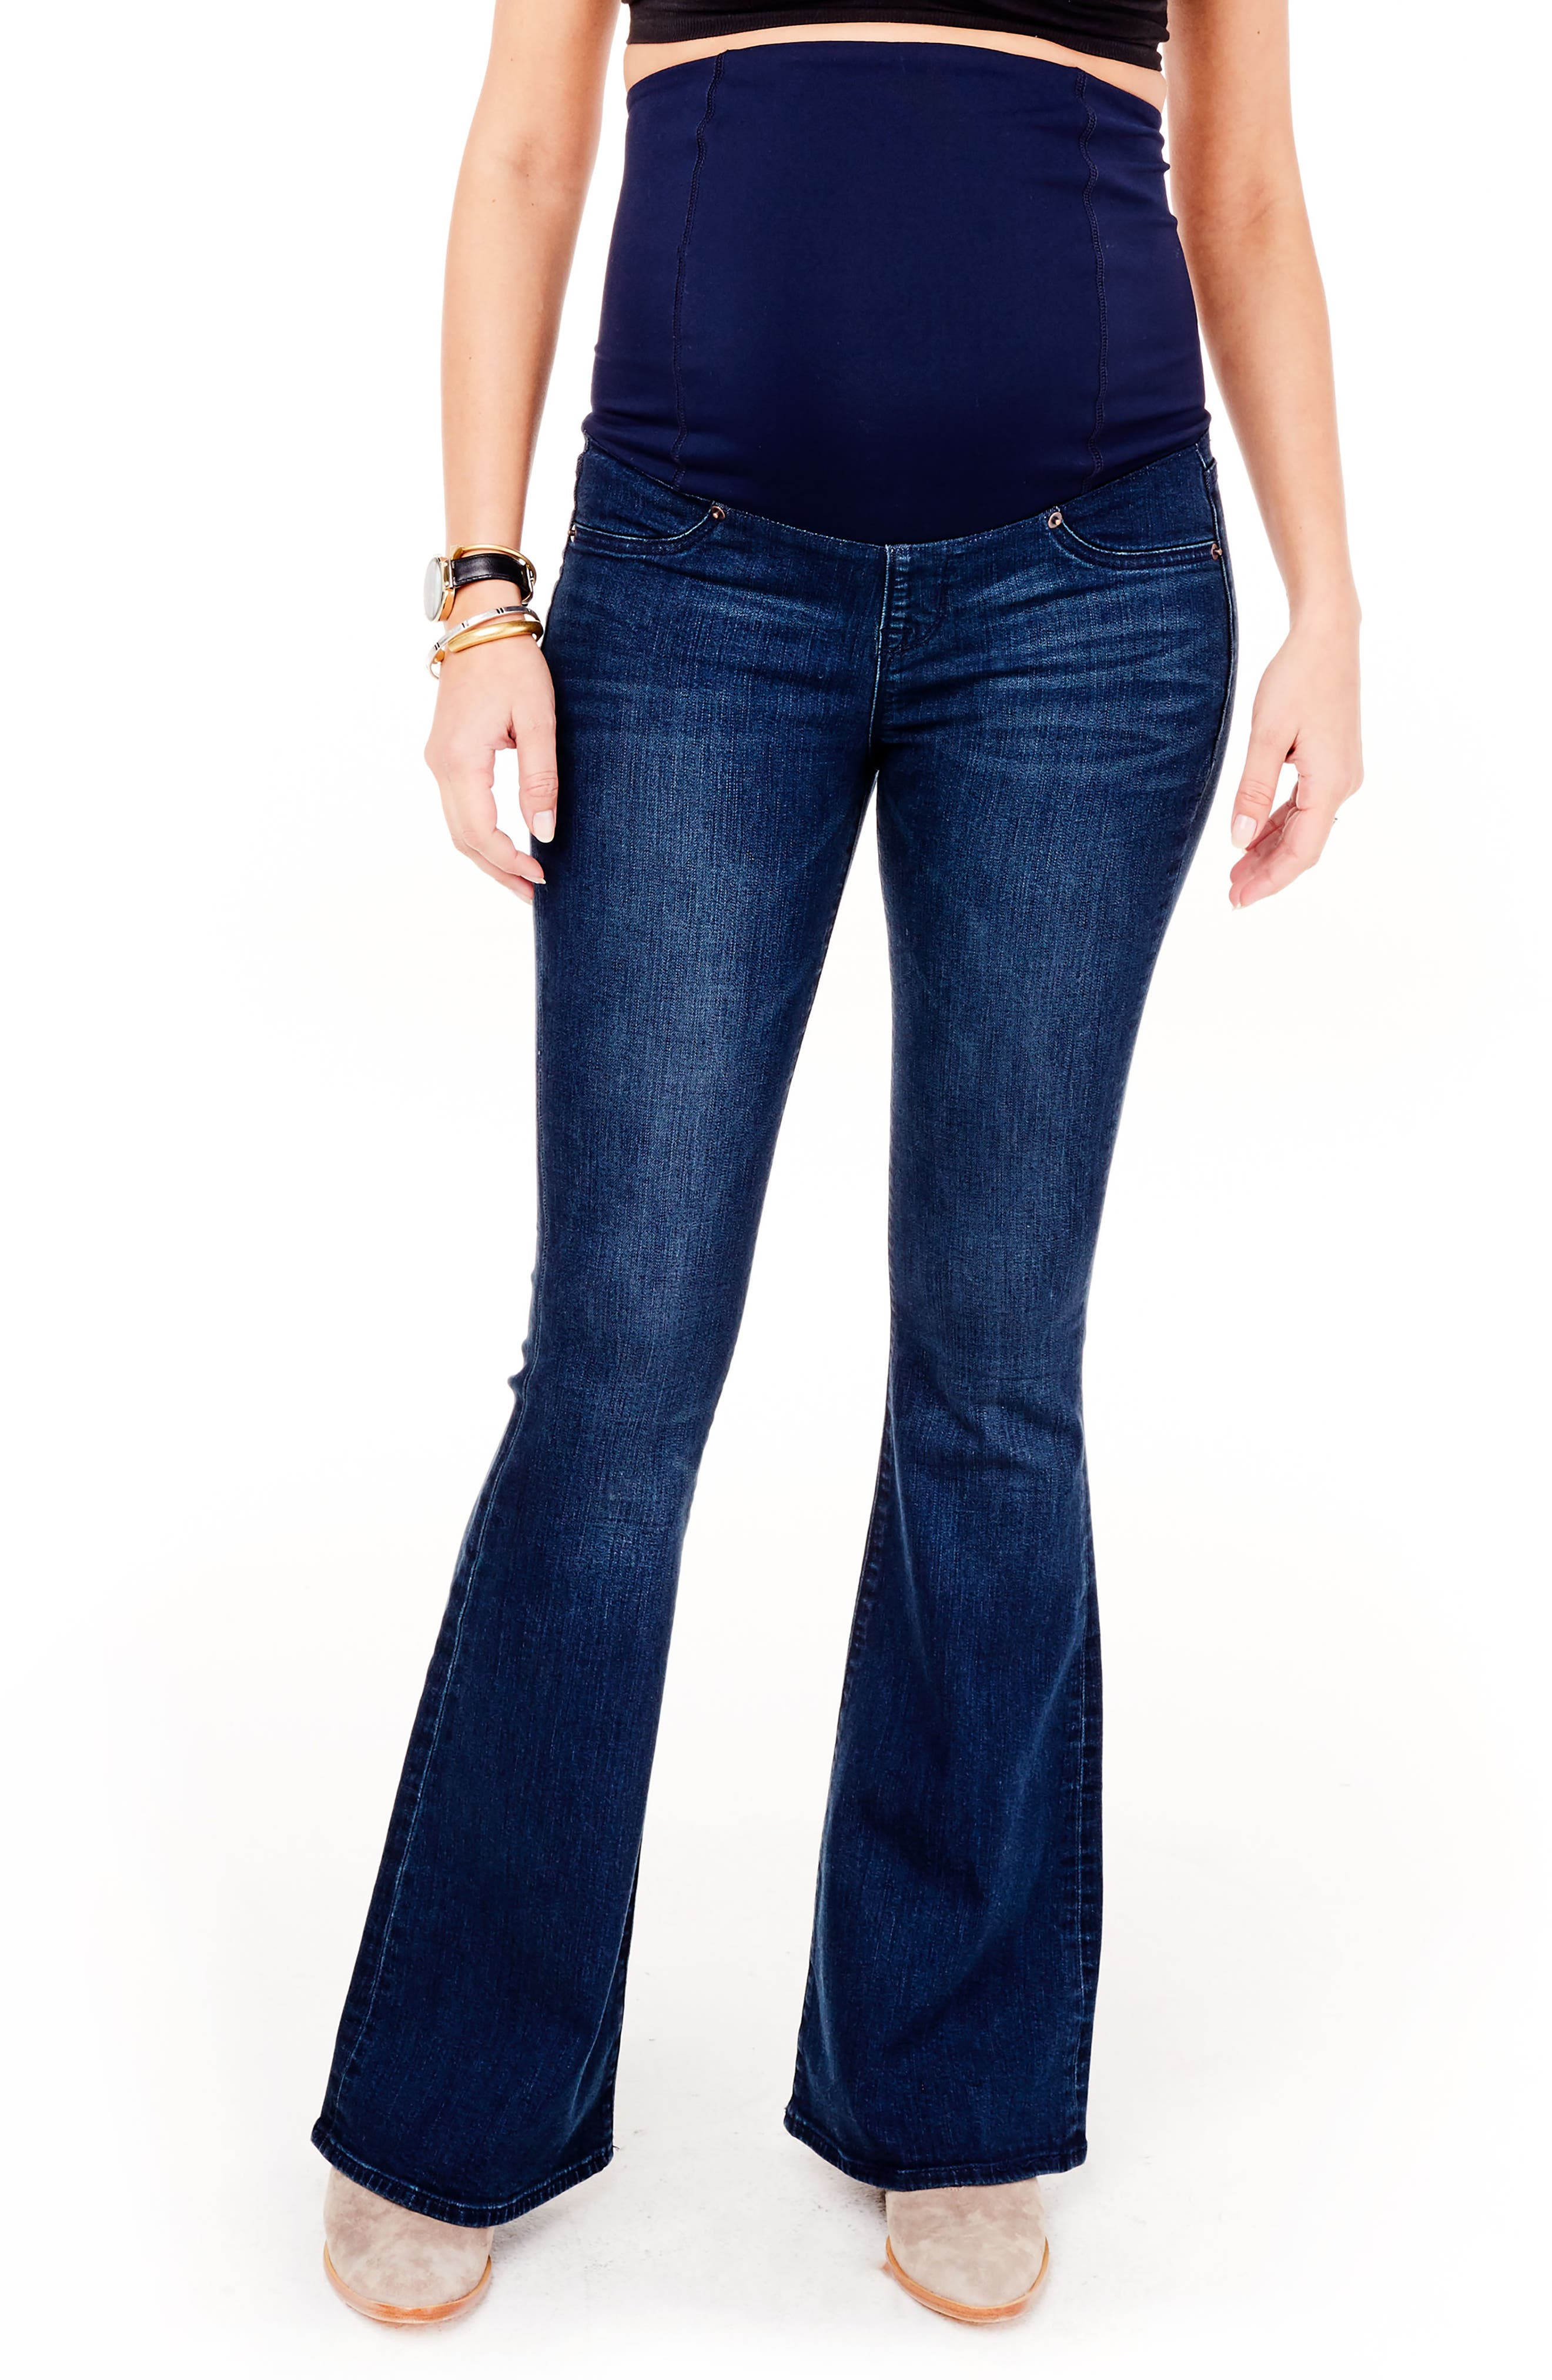 Alternate Image 1 Selected - Ingrid & Isabel® Gracie Flare Maternity Jeans (True Blue)